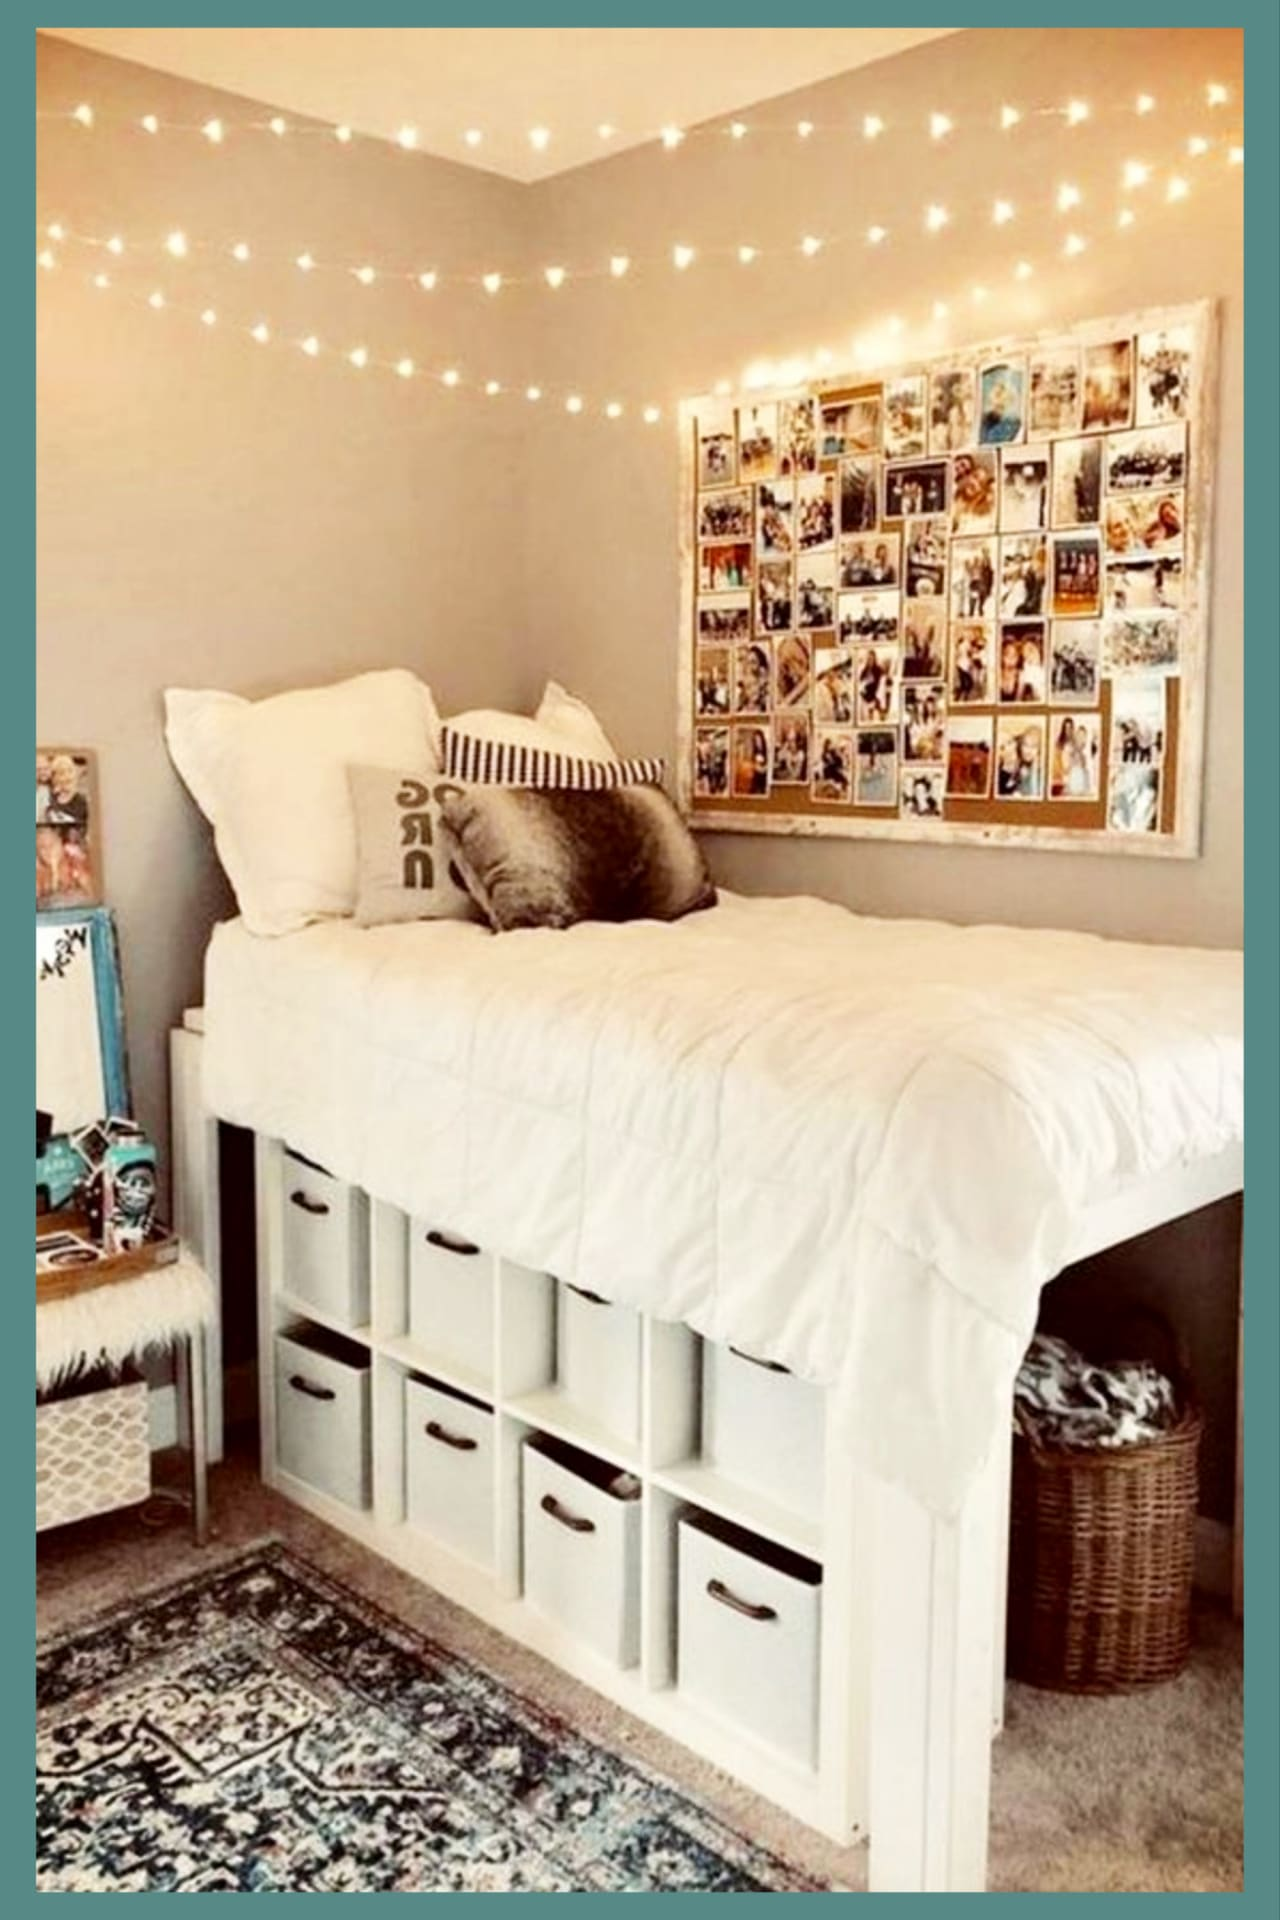 Cute dorm room ideas!  I like the storage area under the dorm room loft bed!